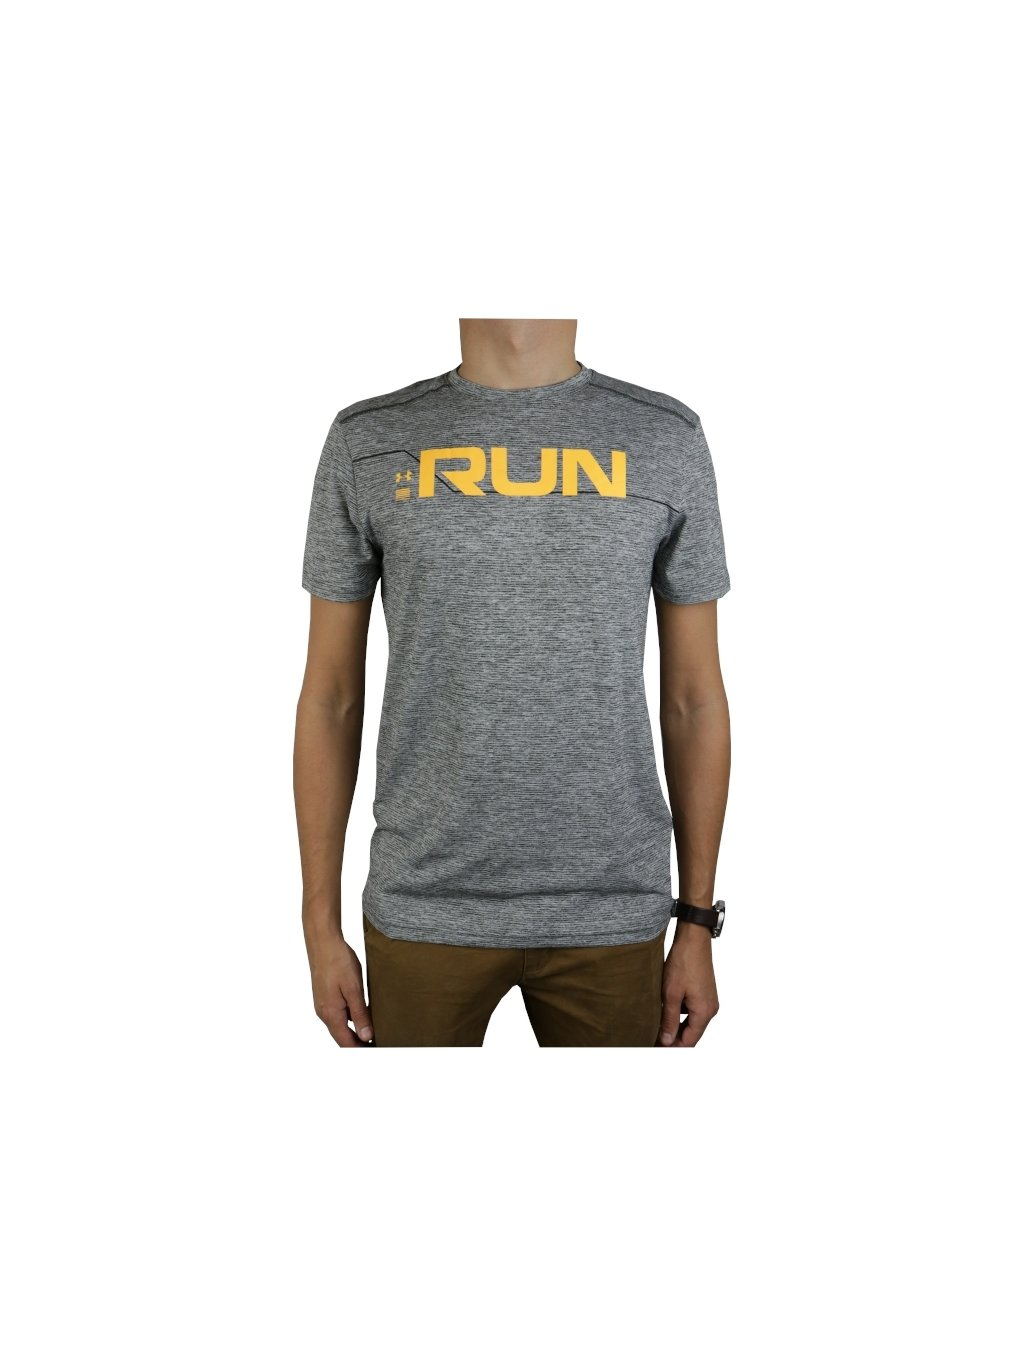 UNDER ARMOUR RUN FRONT GRAPHIC SS TEE